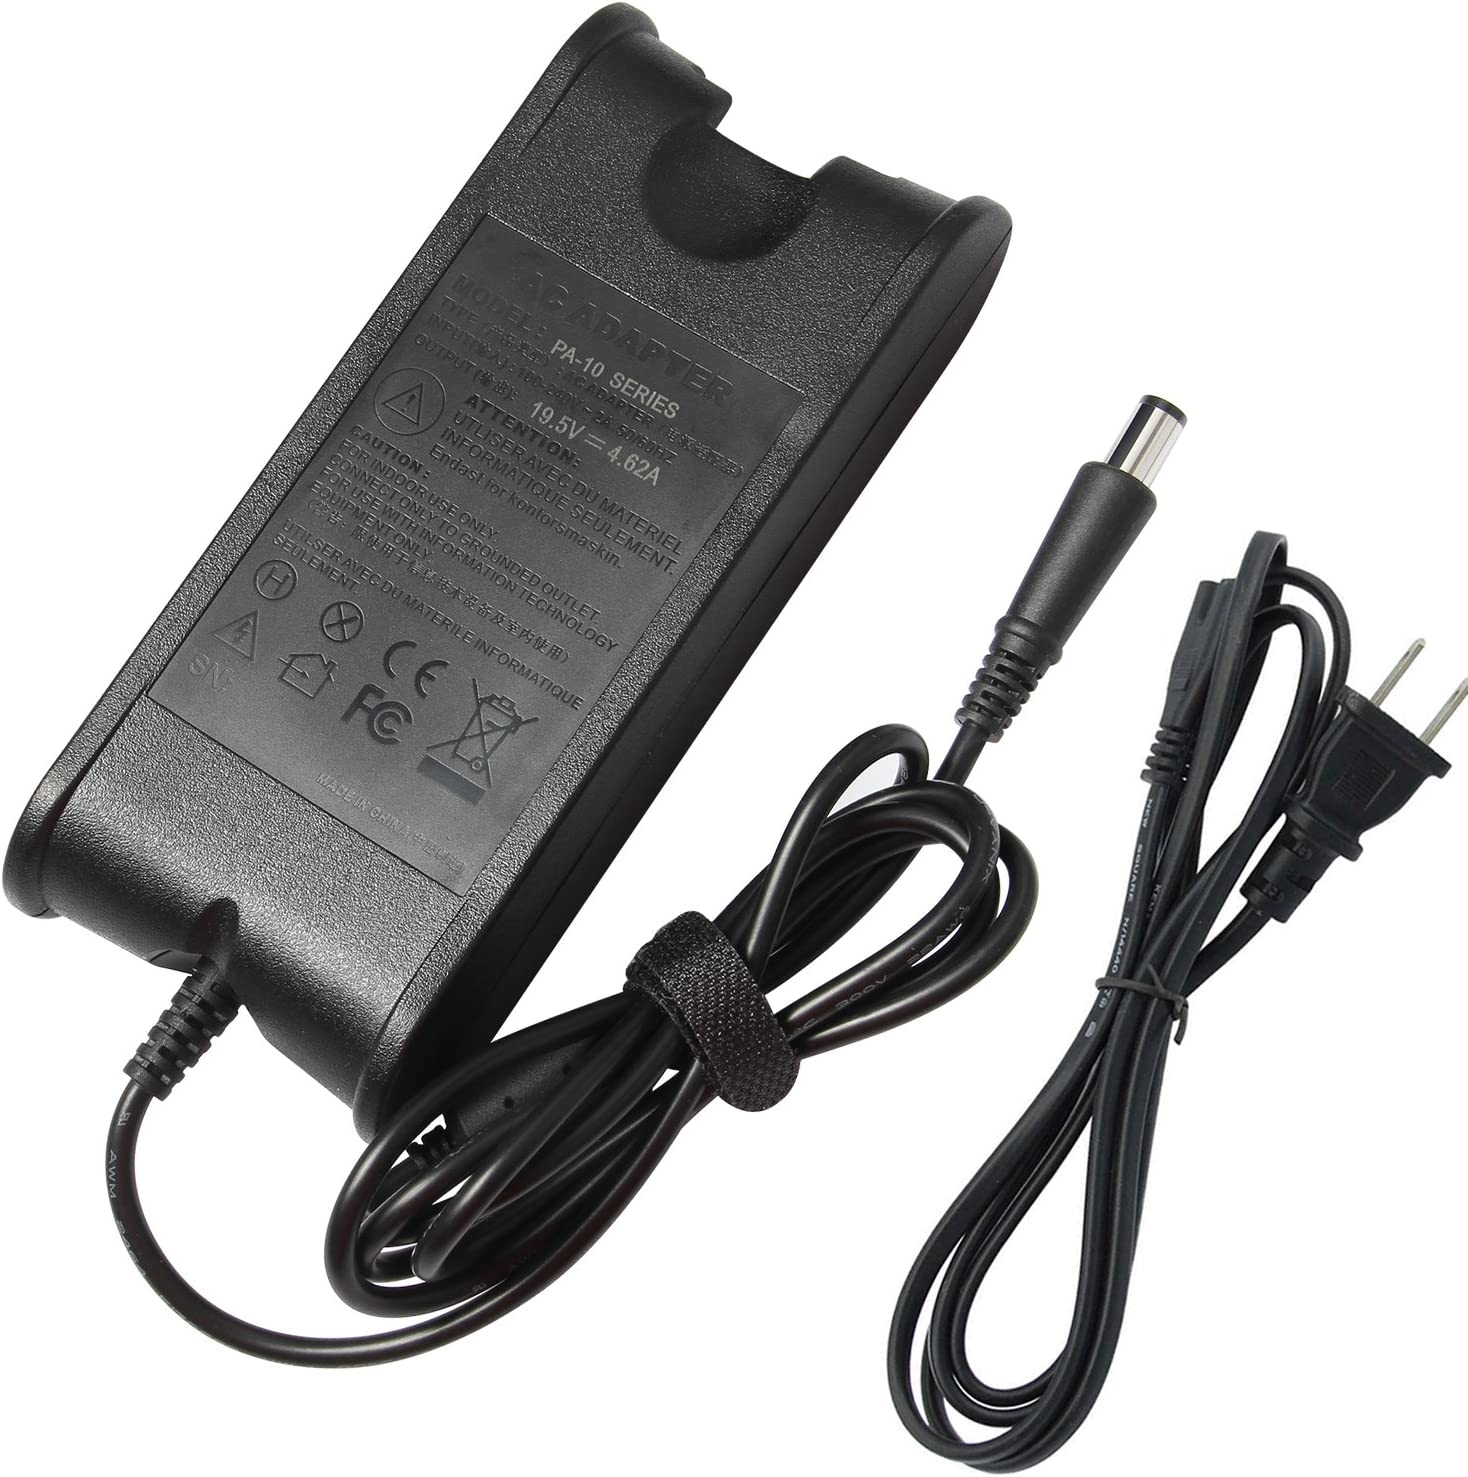 Futurebatt 90W AC Adapter Laptop Charger for Dell Studio XPS-15 15z 16 17 1535 1537 1555 1558 1569 L501x L502x 1640 1737 1749 M1210 M1330 M140 M1530 M1710 Notebook